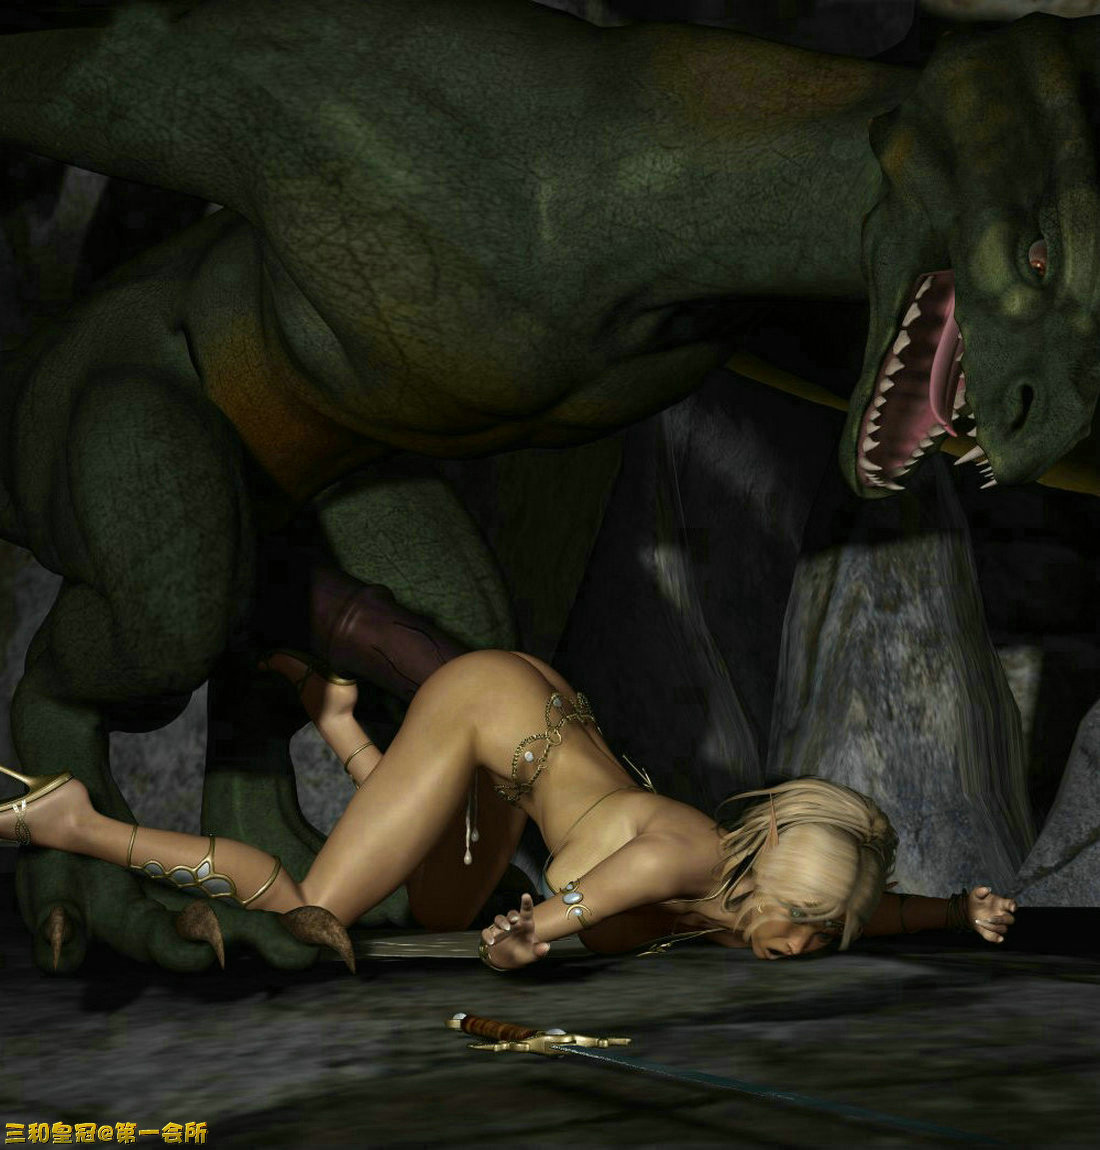 3d dragon fucks girl anime image